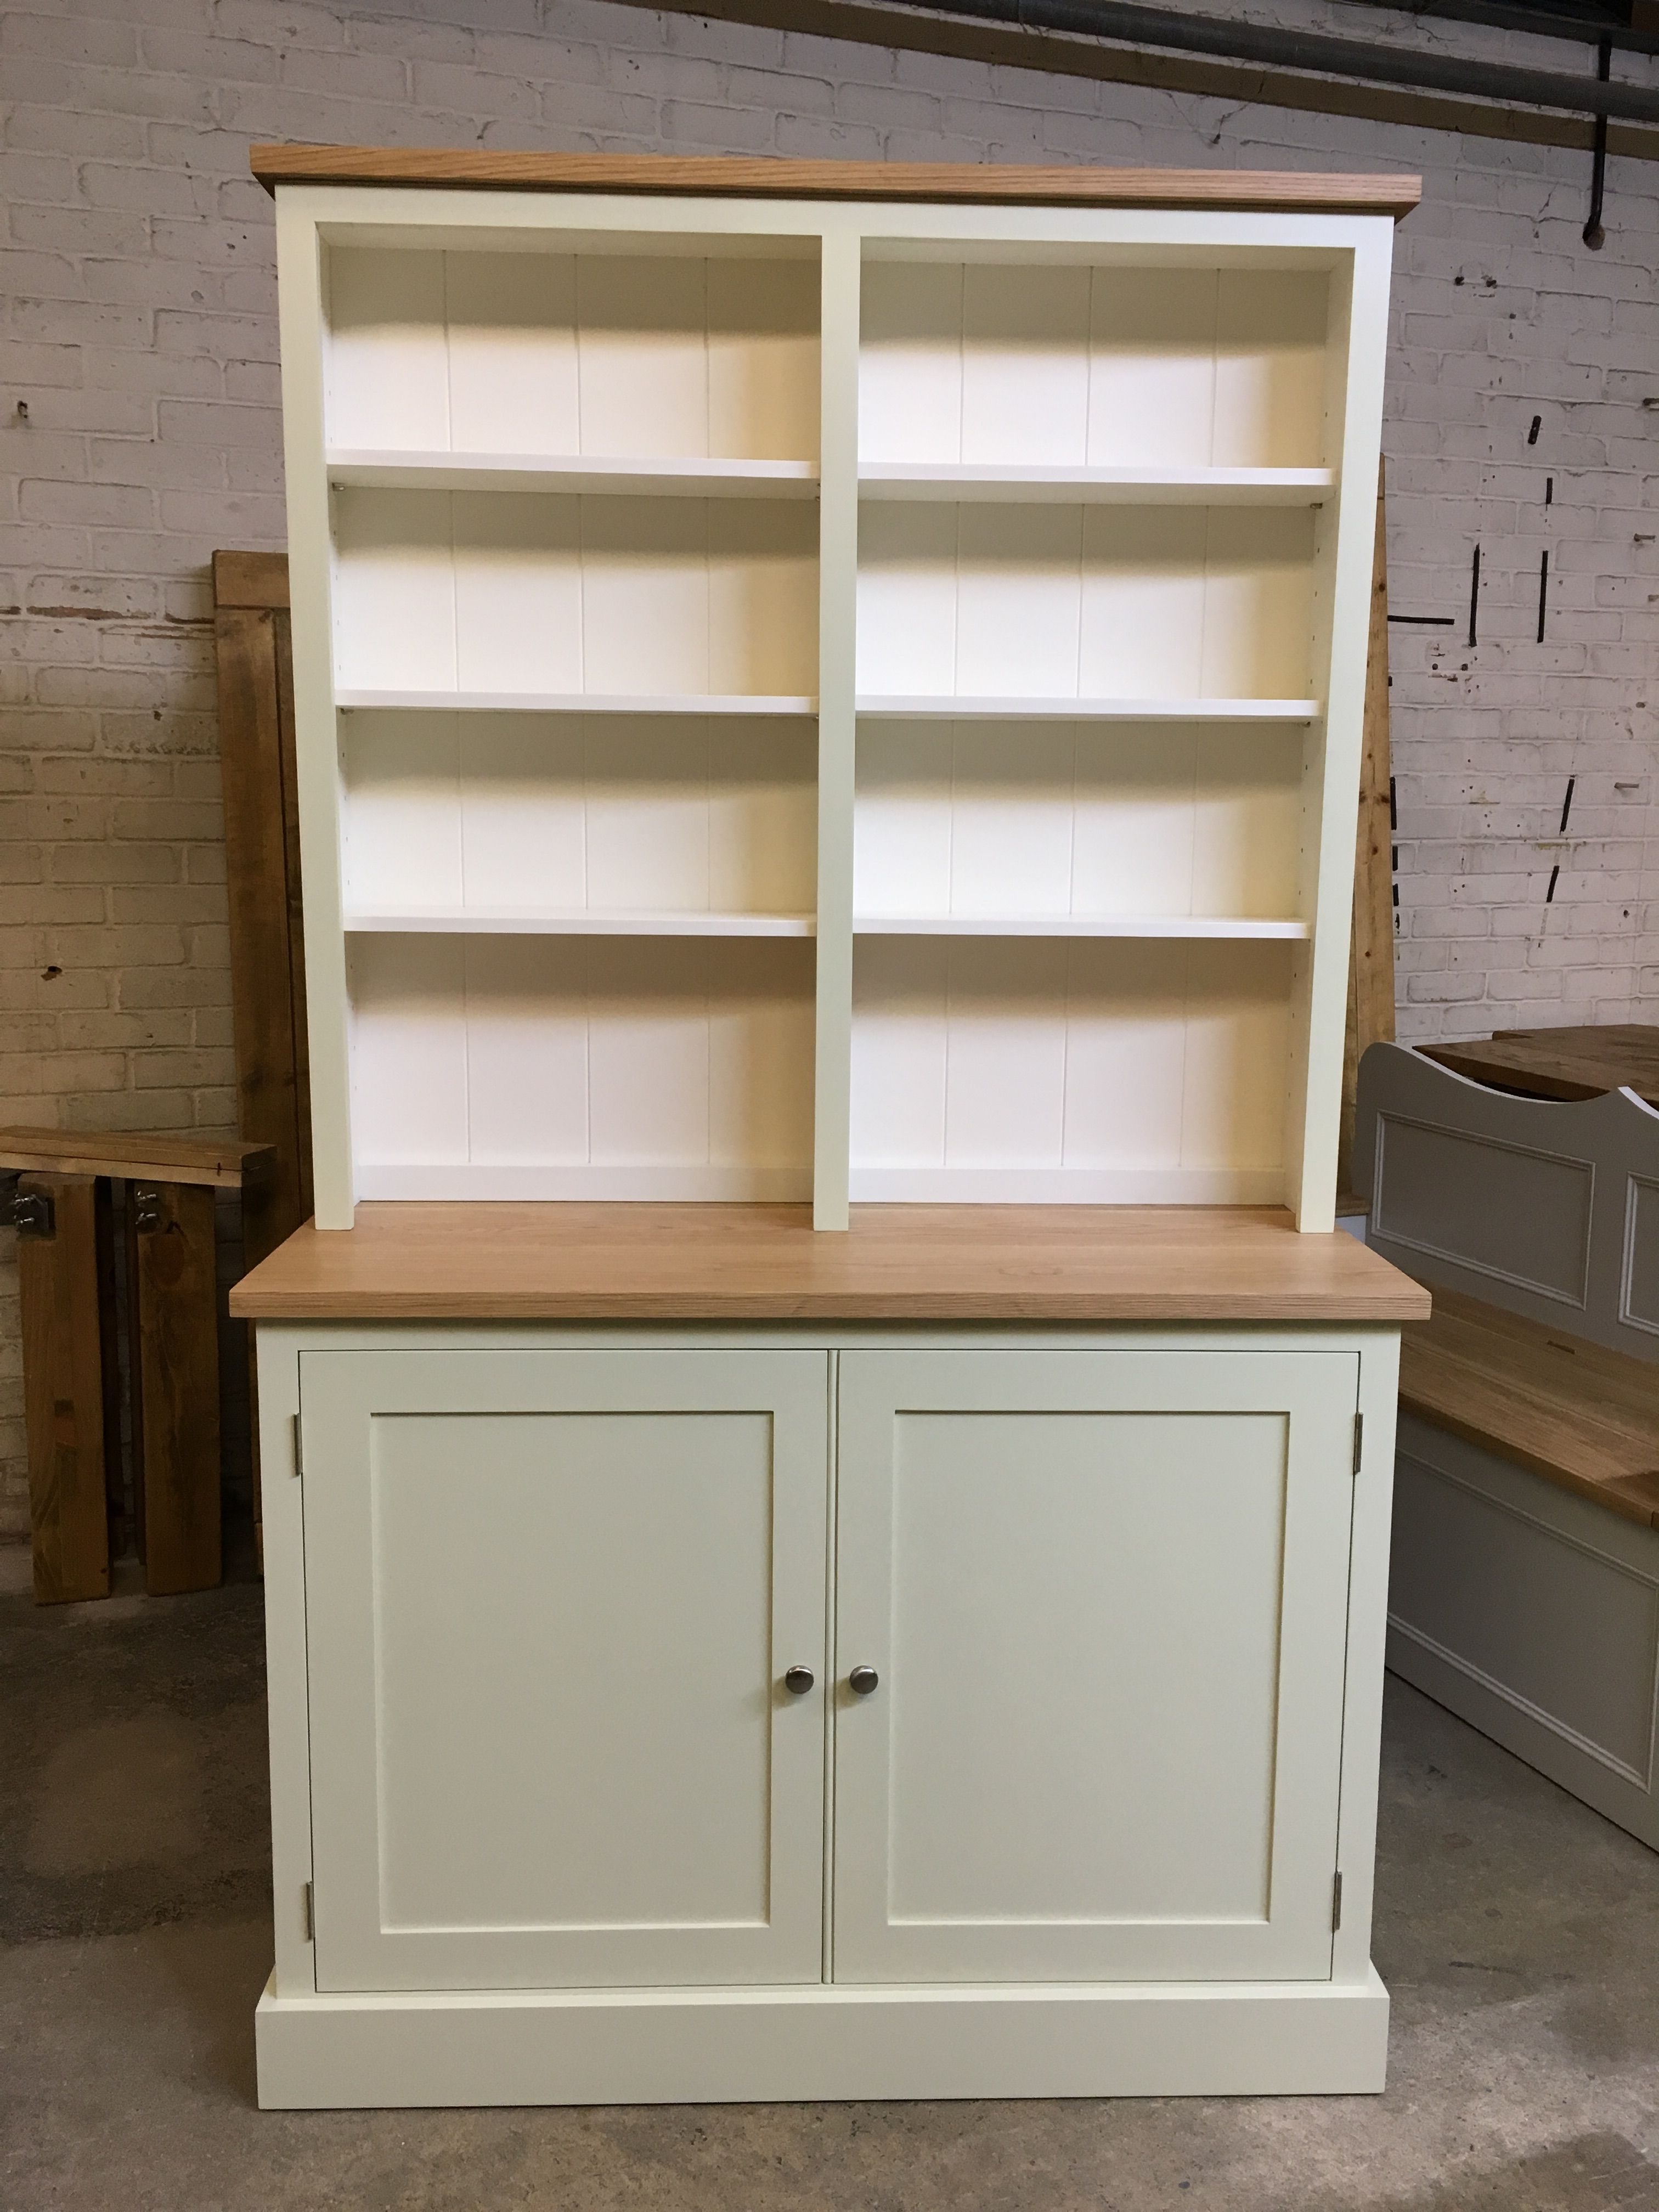 A Bespoke Bookcase Dresser Painted In F B Green Ground And Pointing Www Cobwebsfurniture